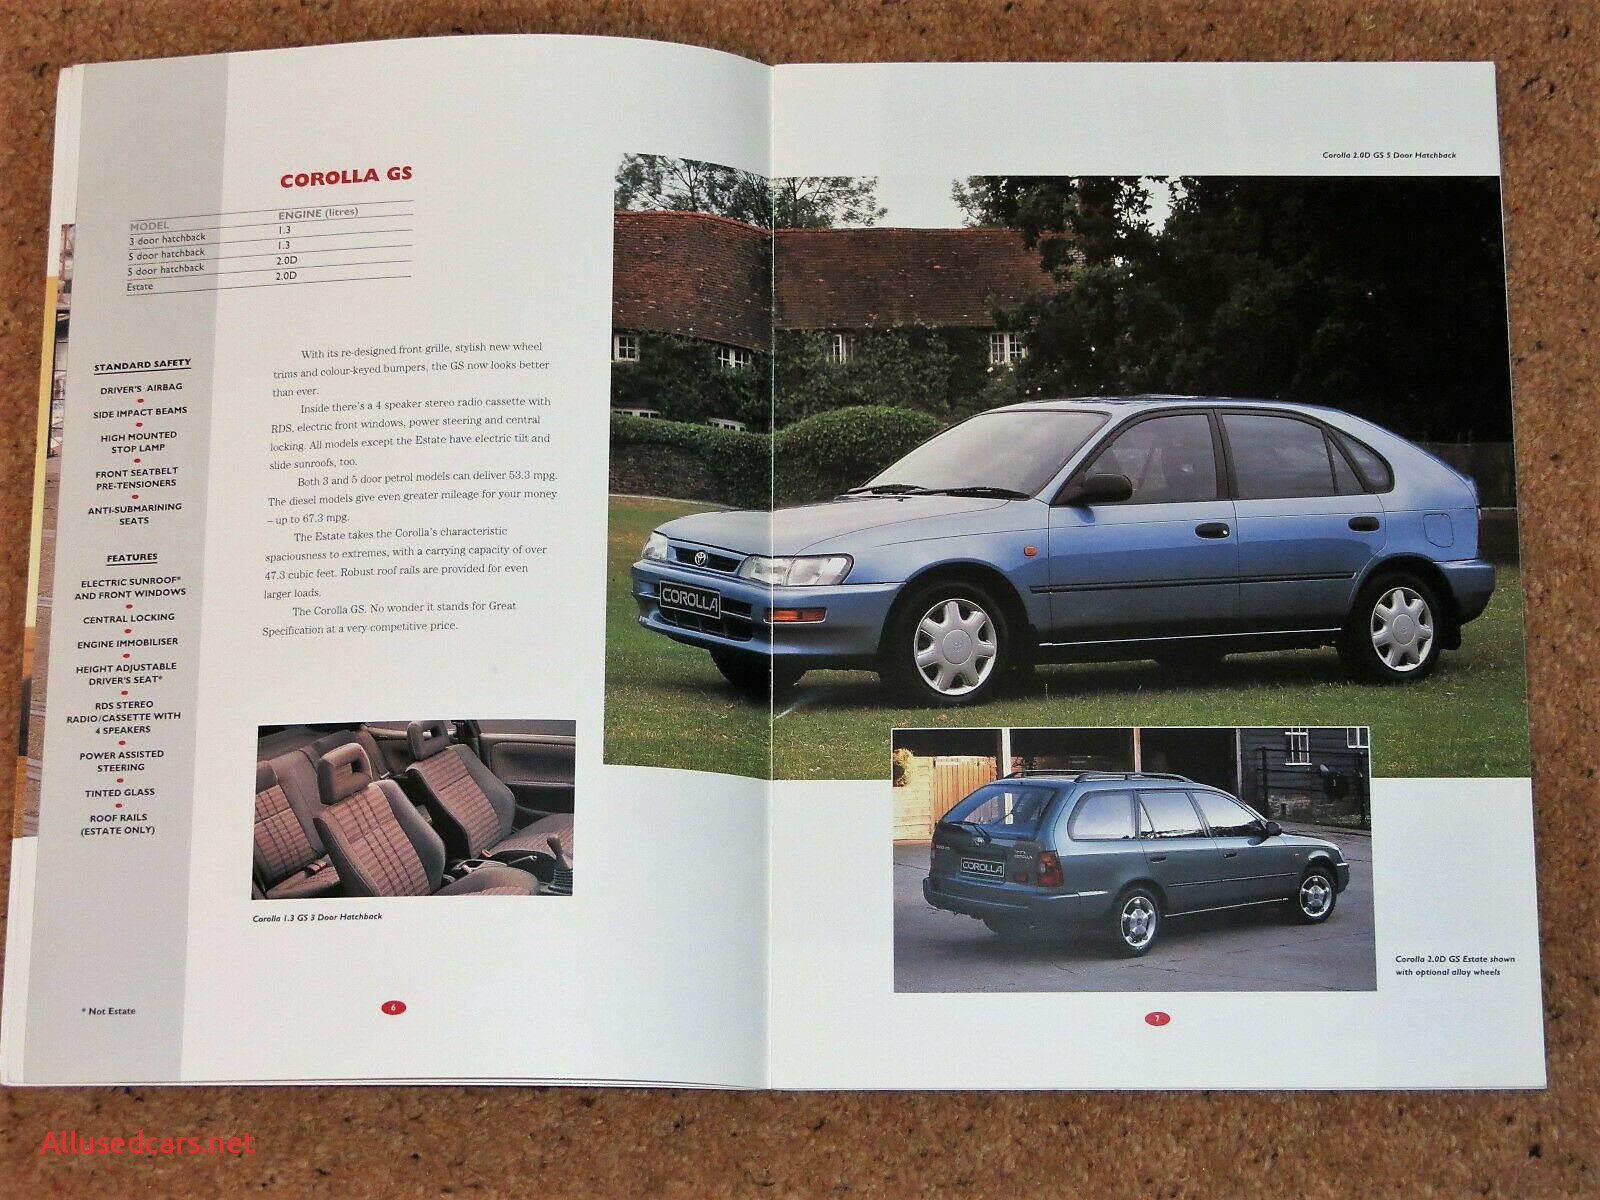 Toyota Corolla Sport Lovely 1995 96 toyota Corolla Sales Brochure Sportif Gs Cd Si Cdx 3dr 4dr 5dr Estate